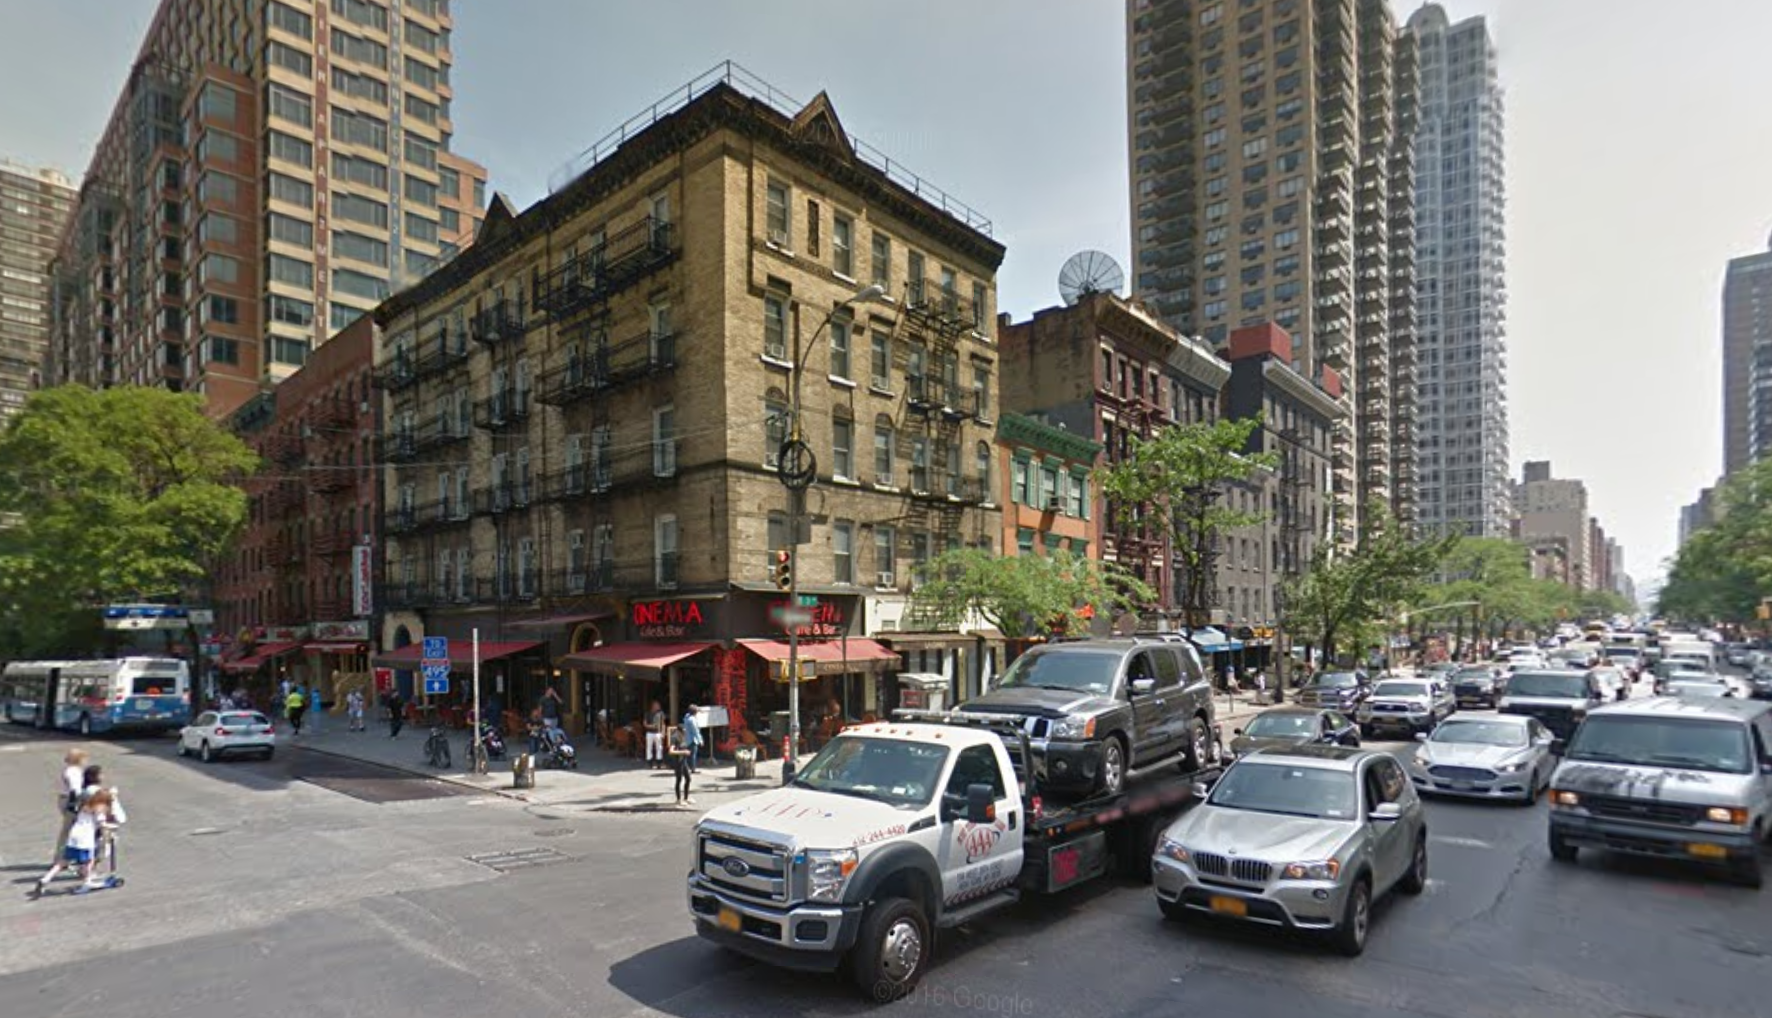 499 and 501 Third Avenue in June 2016. image via Google Maps